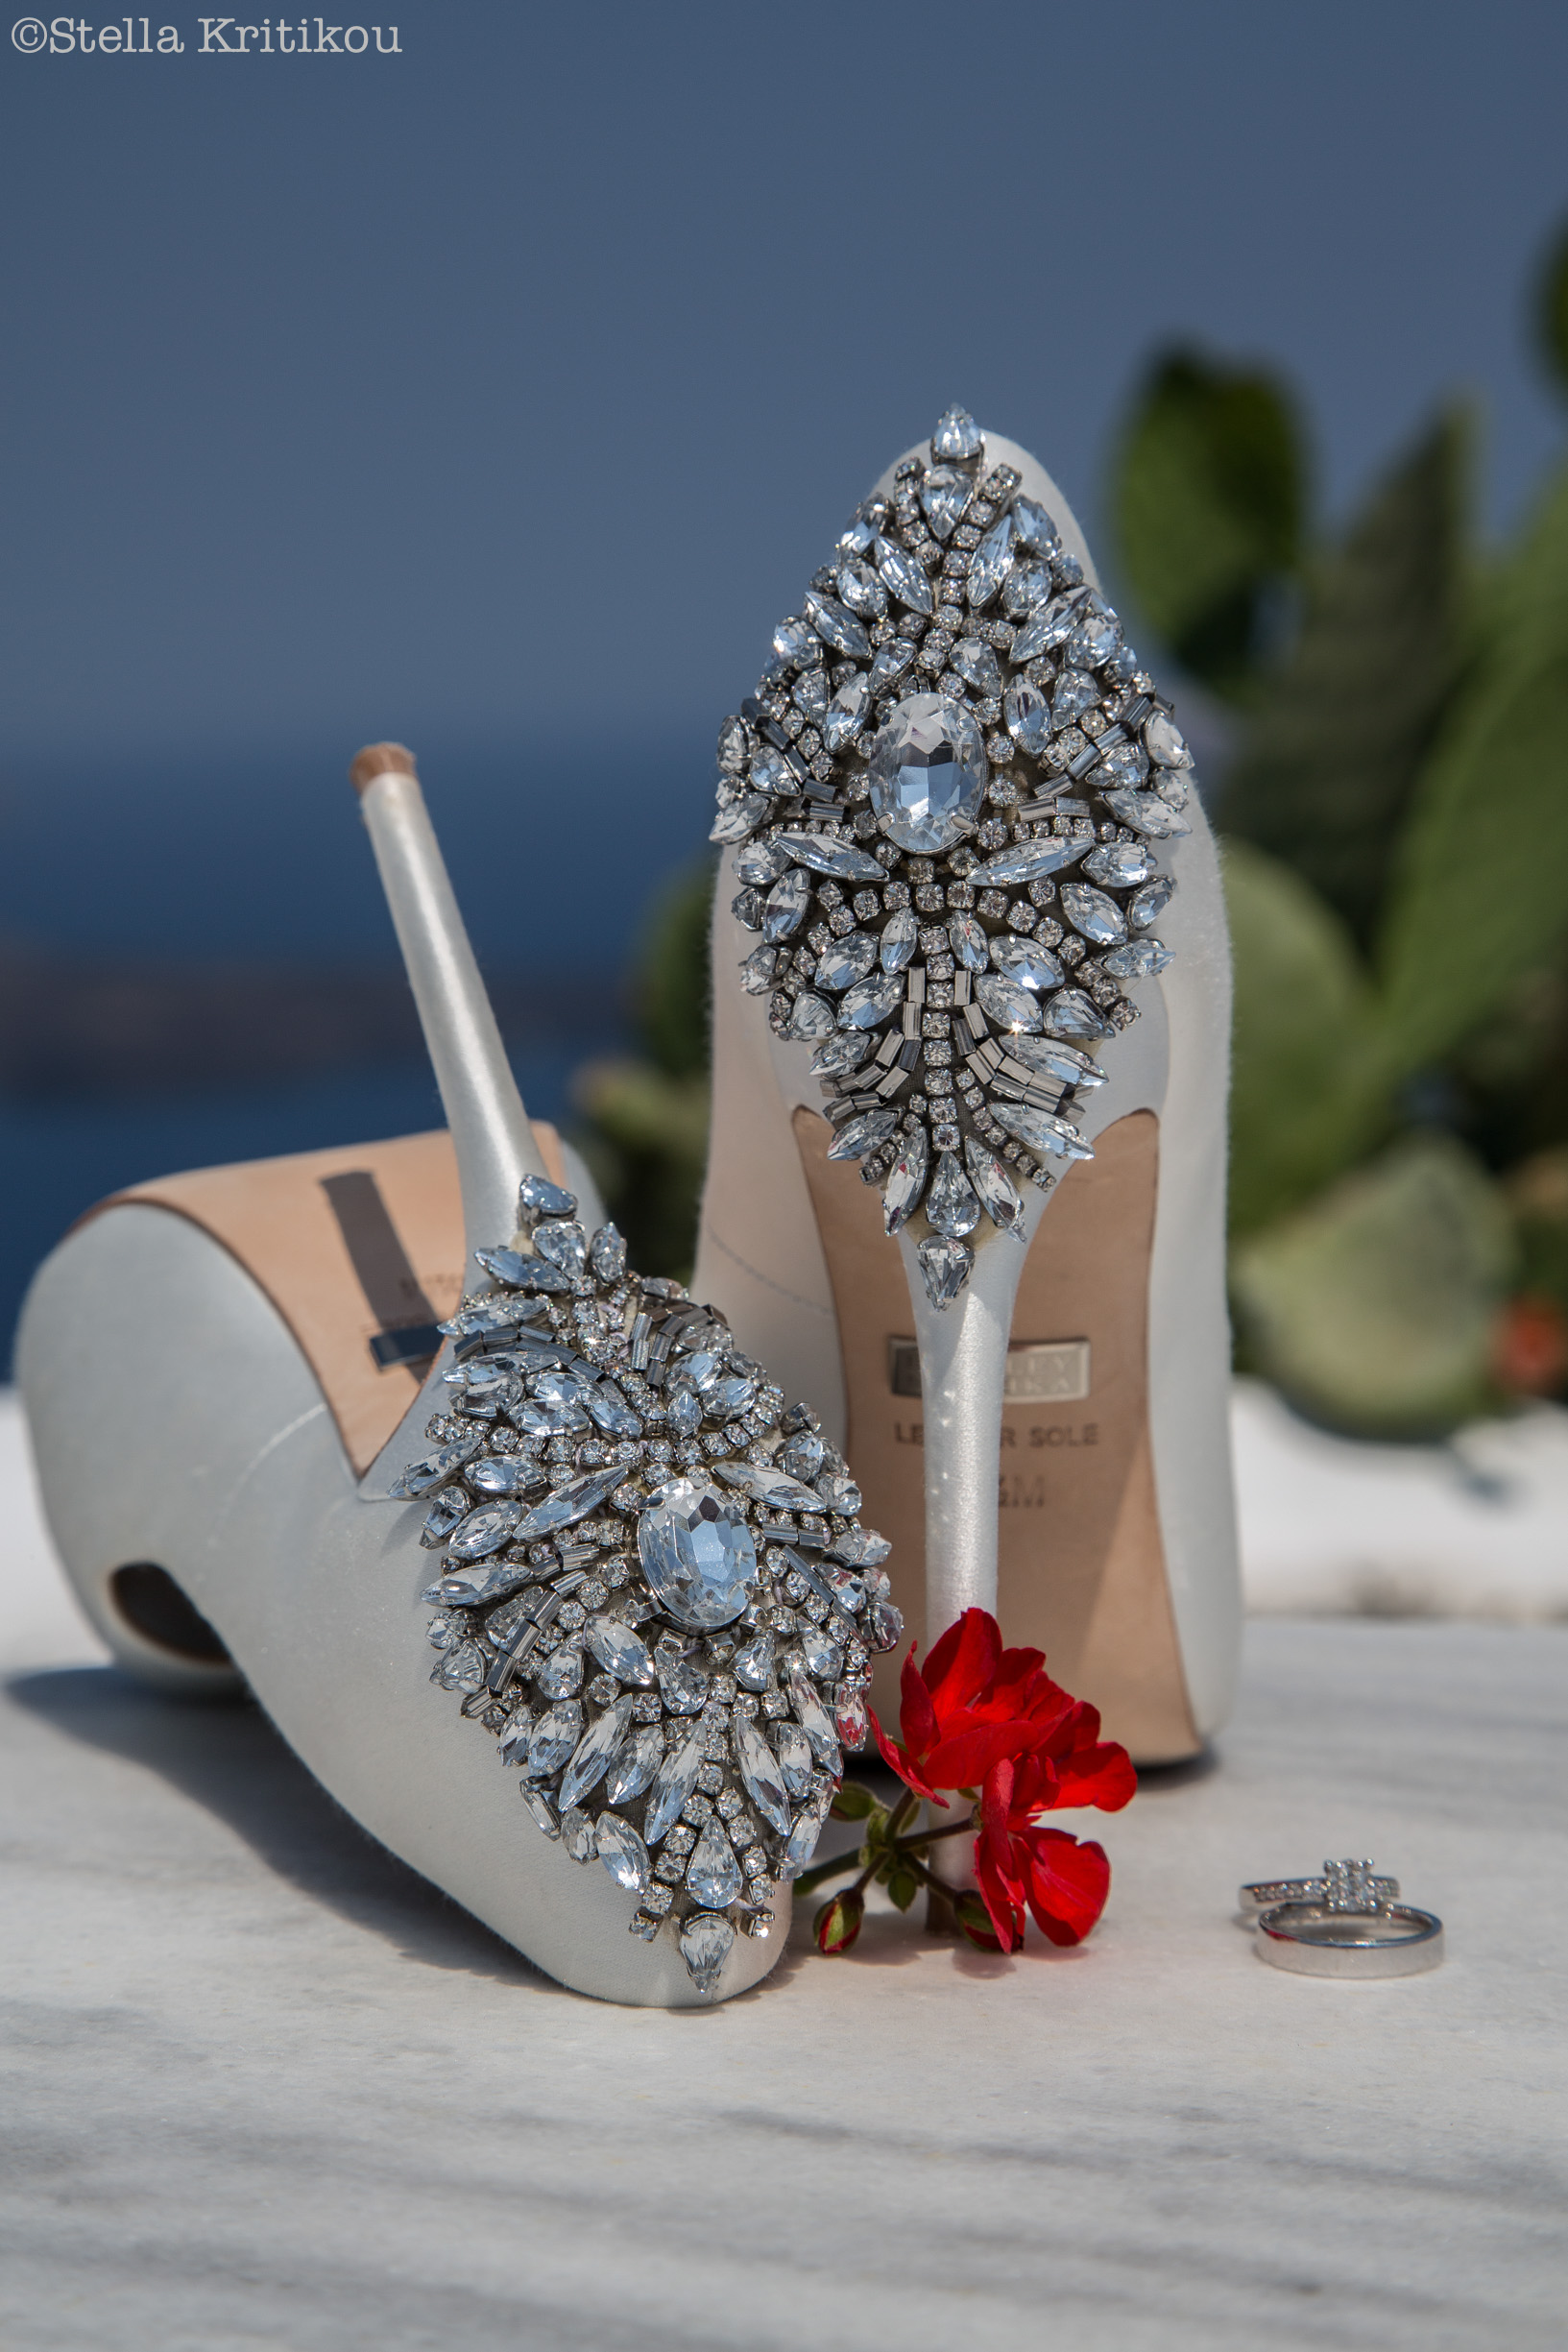 stella kritikou_wedding shoes.jpg